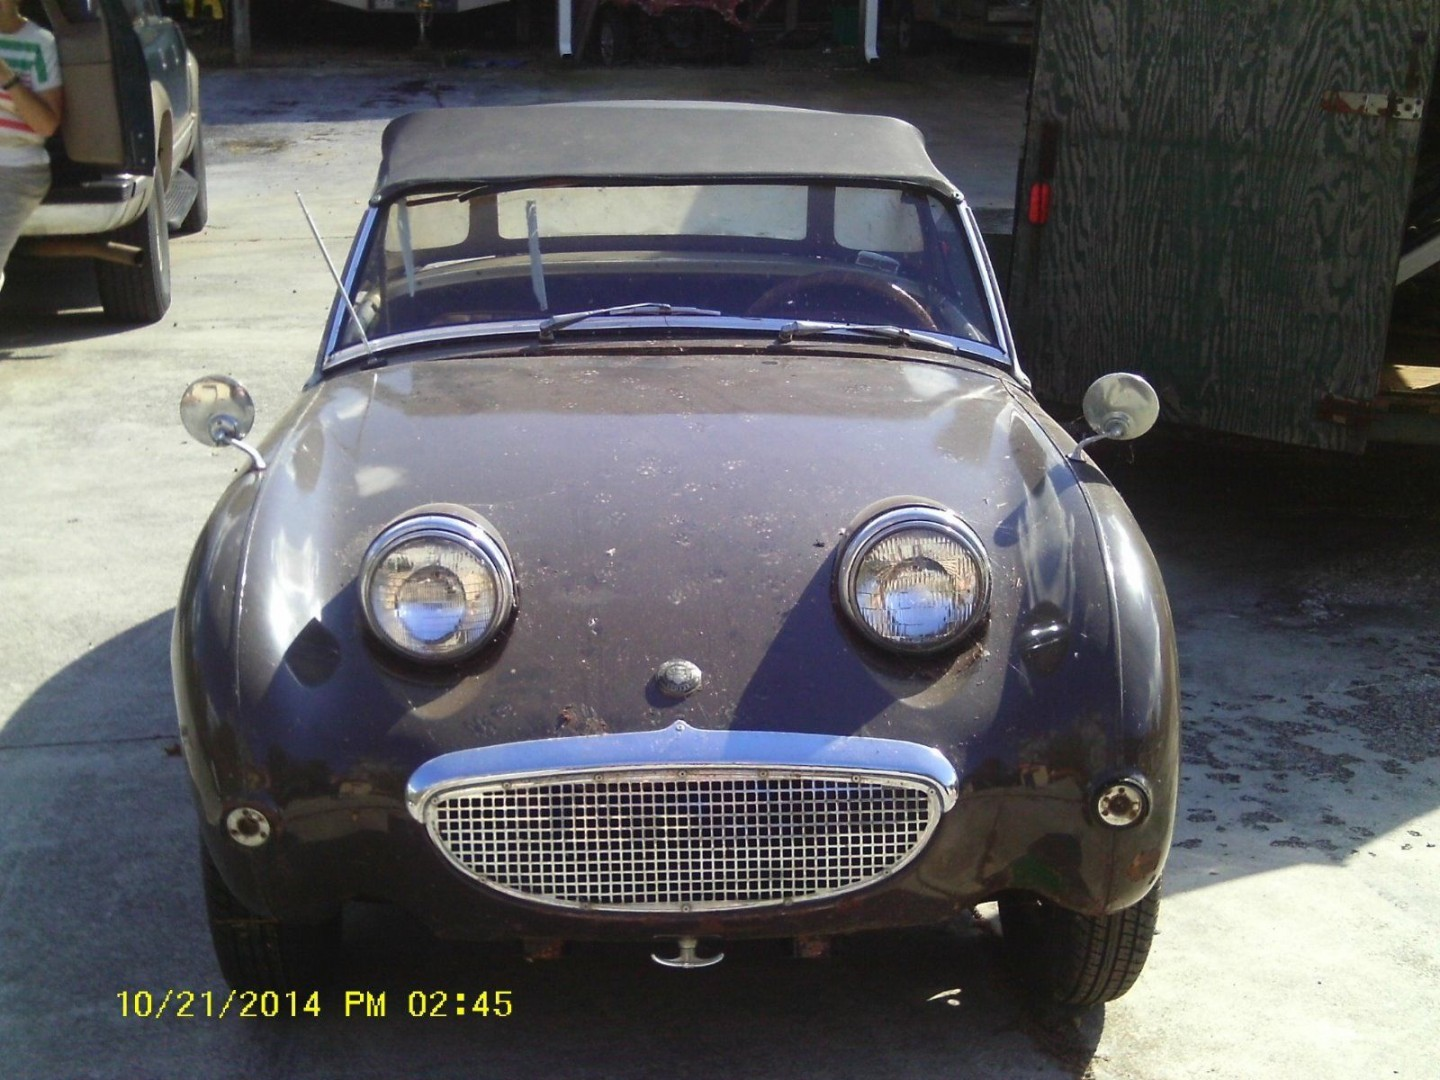 Austin Healey Sprite Frogeye 1961 - MBB Collection